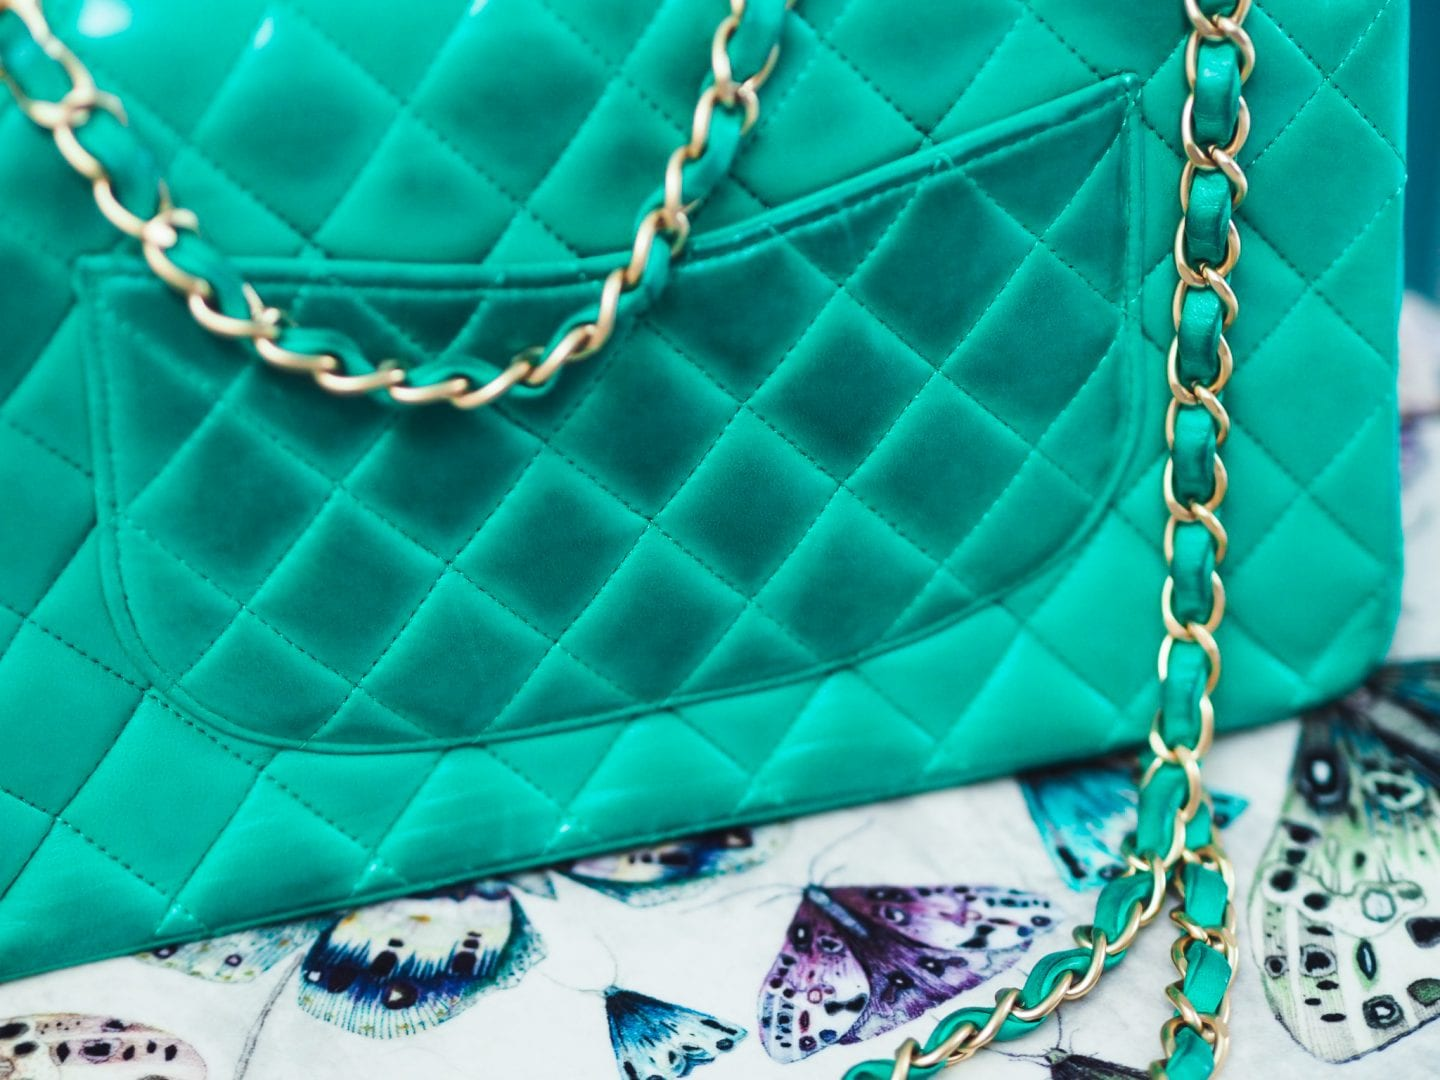 chanel classic flap handbag green colour color transfer results back view